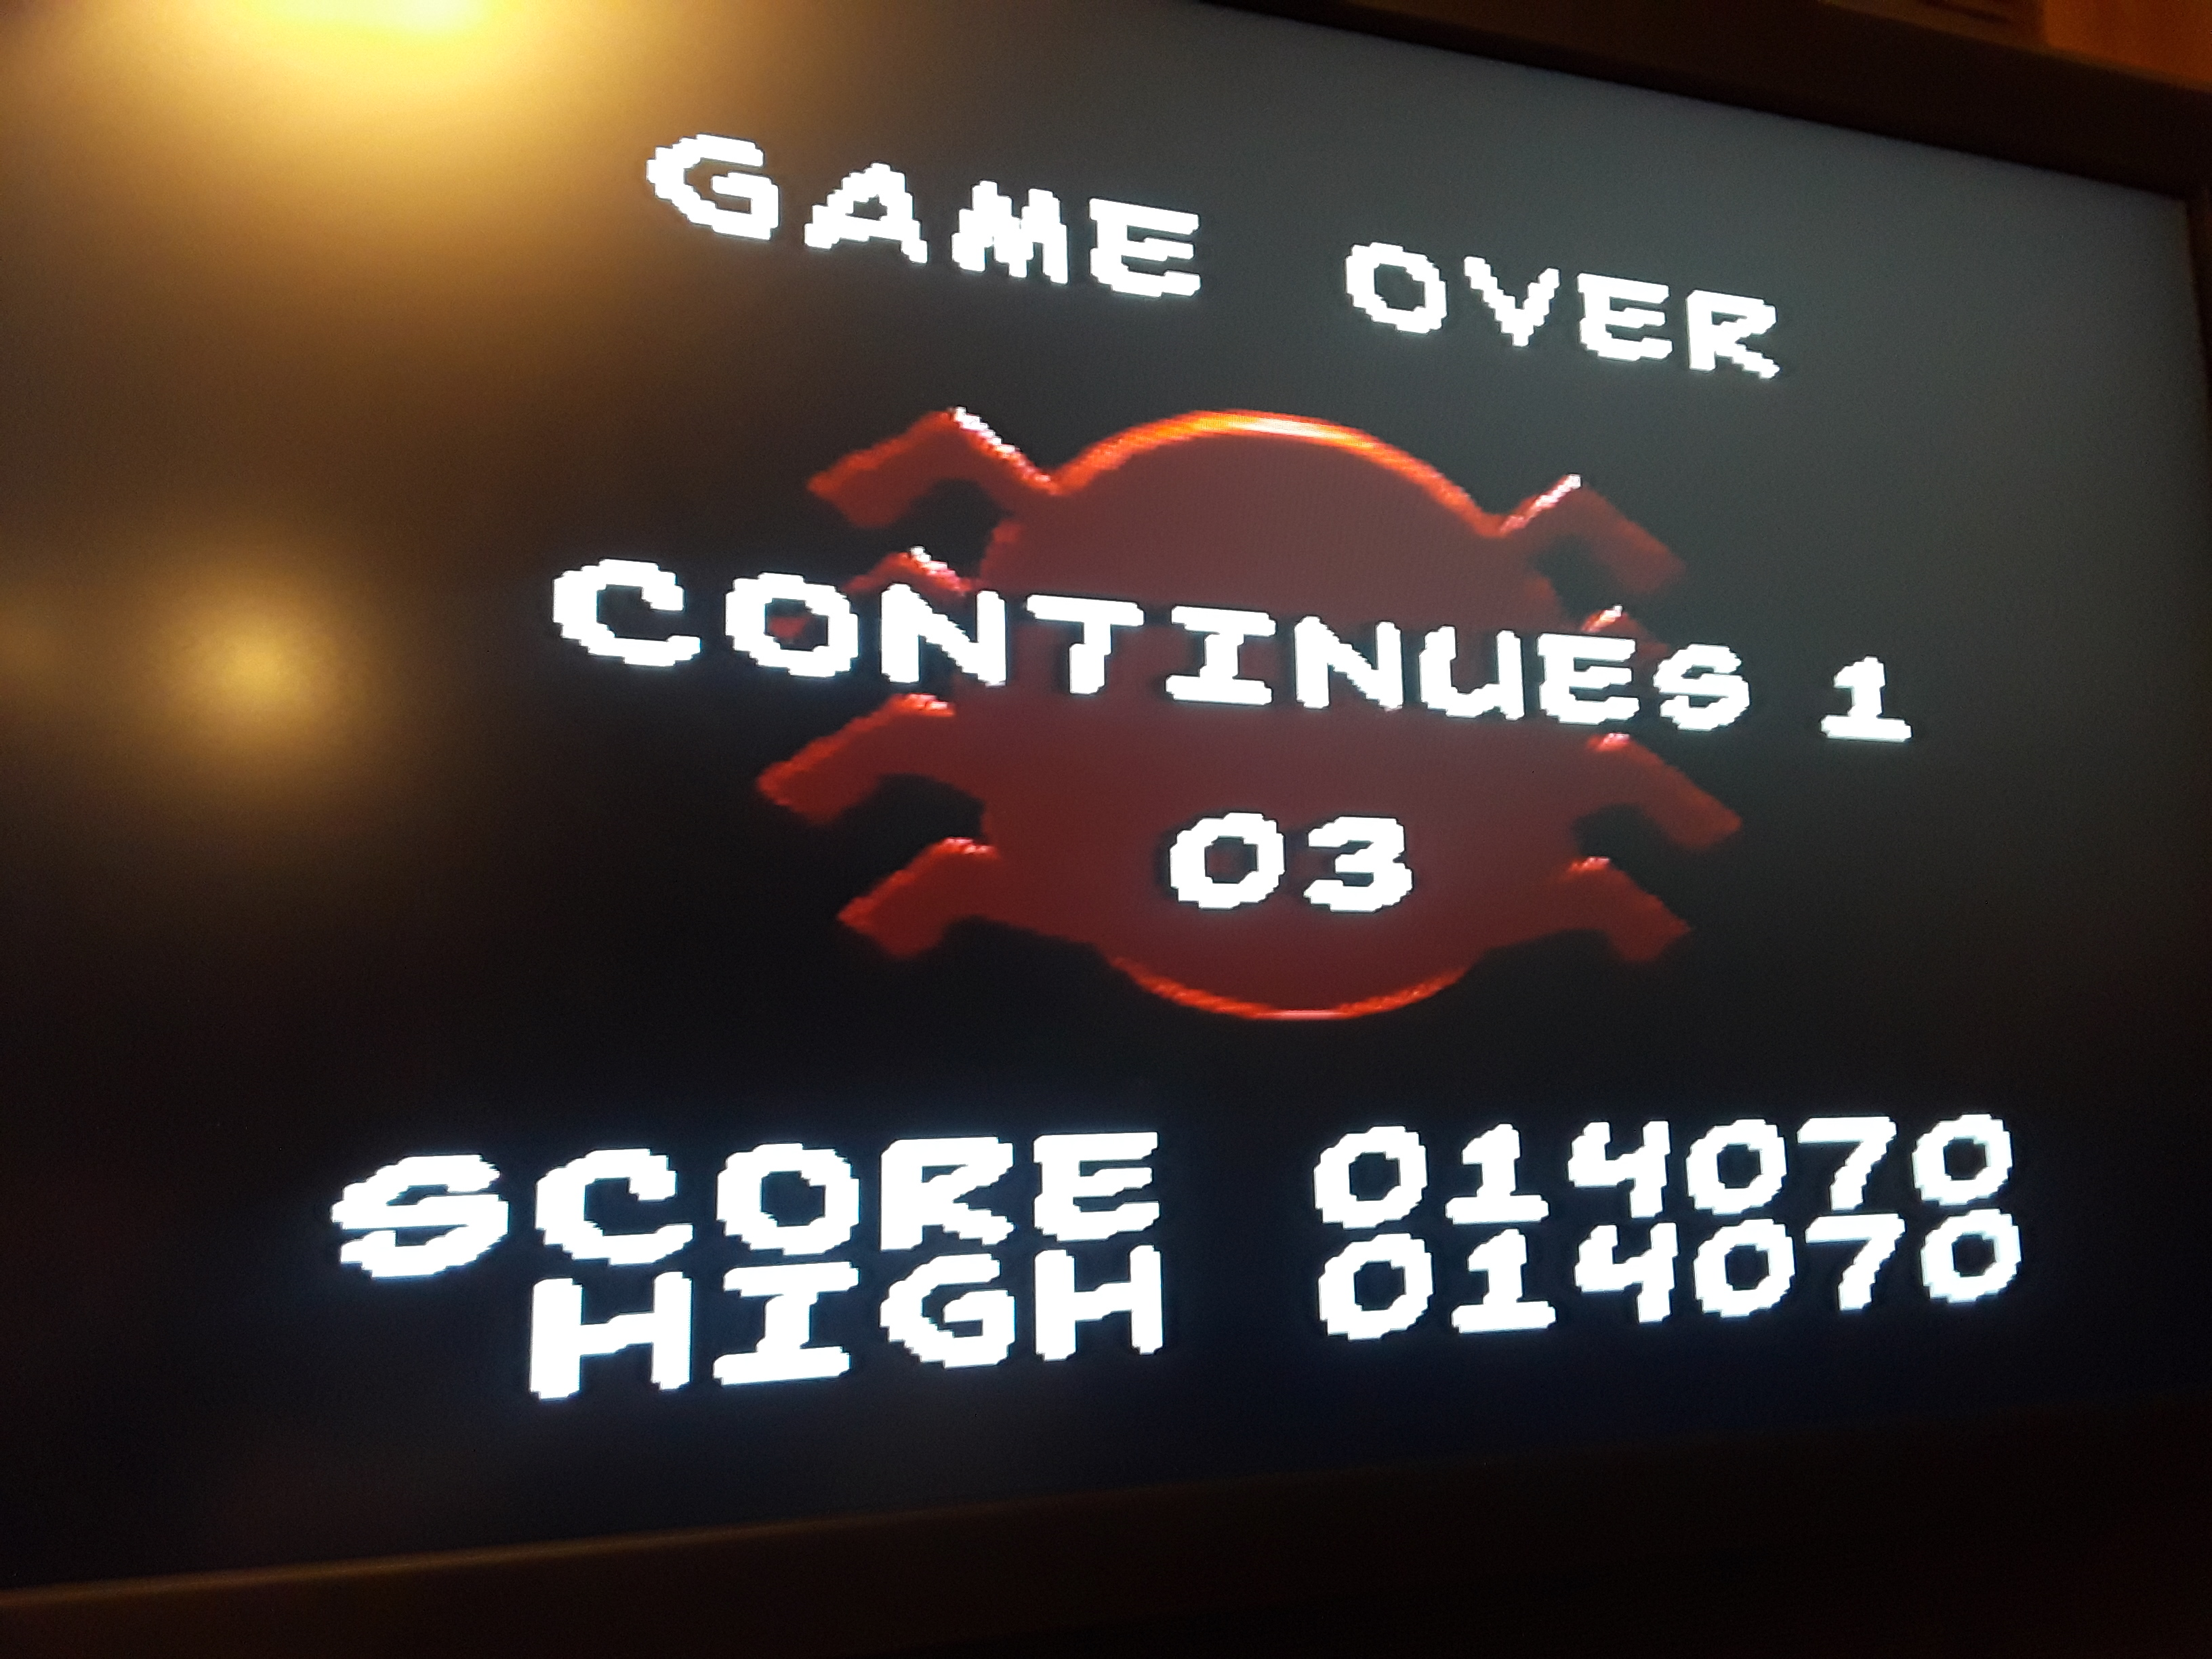 Maximum Carnage [Medium] 14,070 points